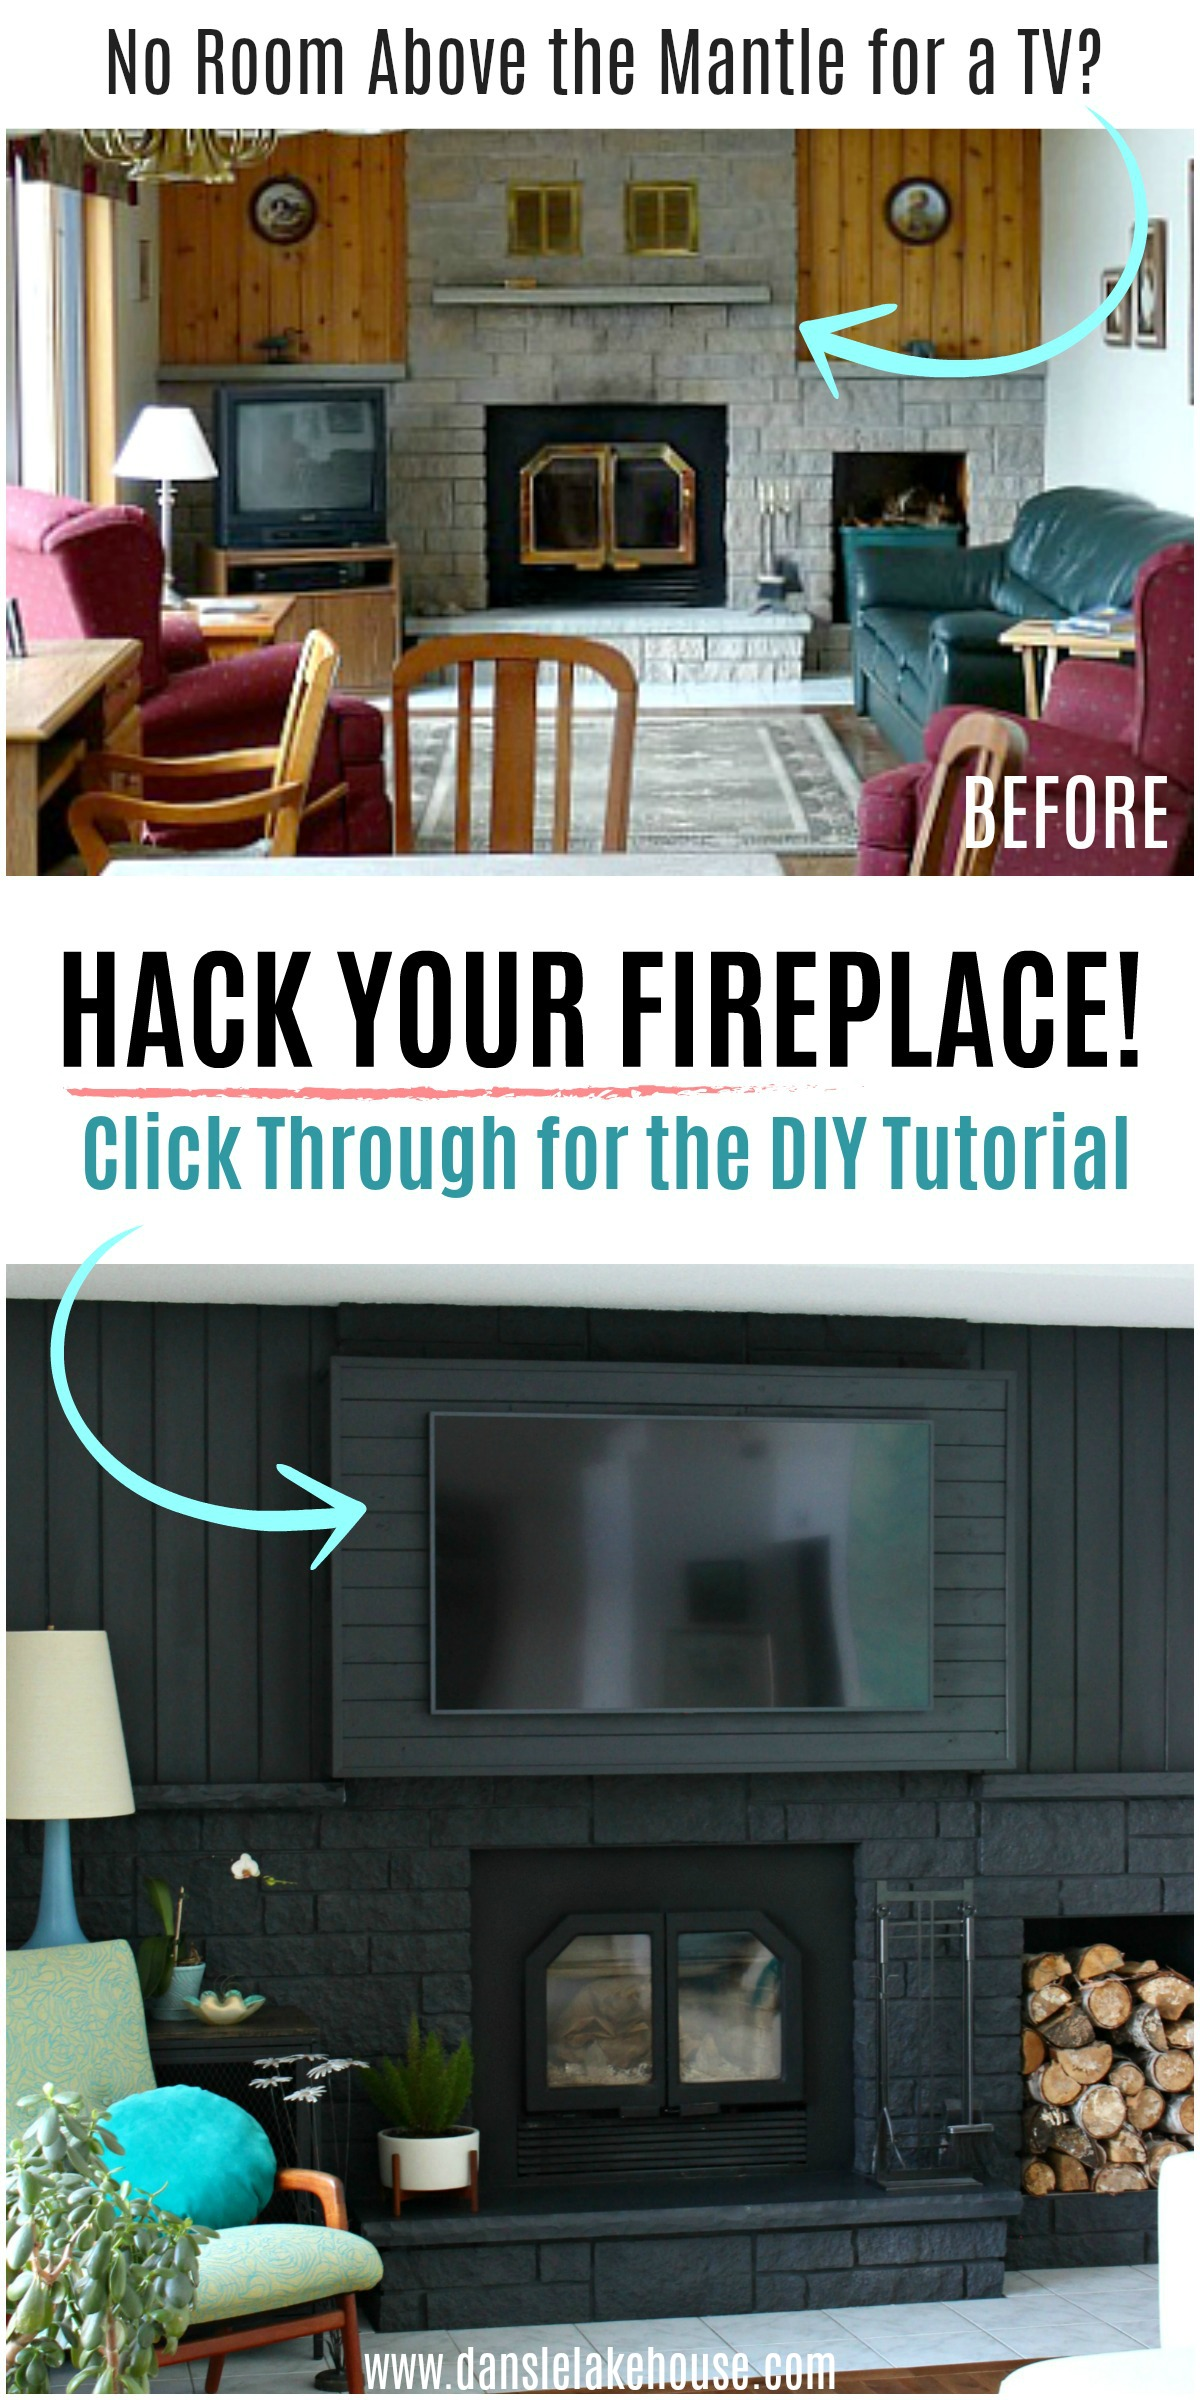 Fireplace Hack to Build a Bump Out